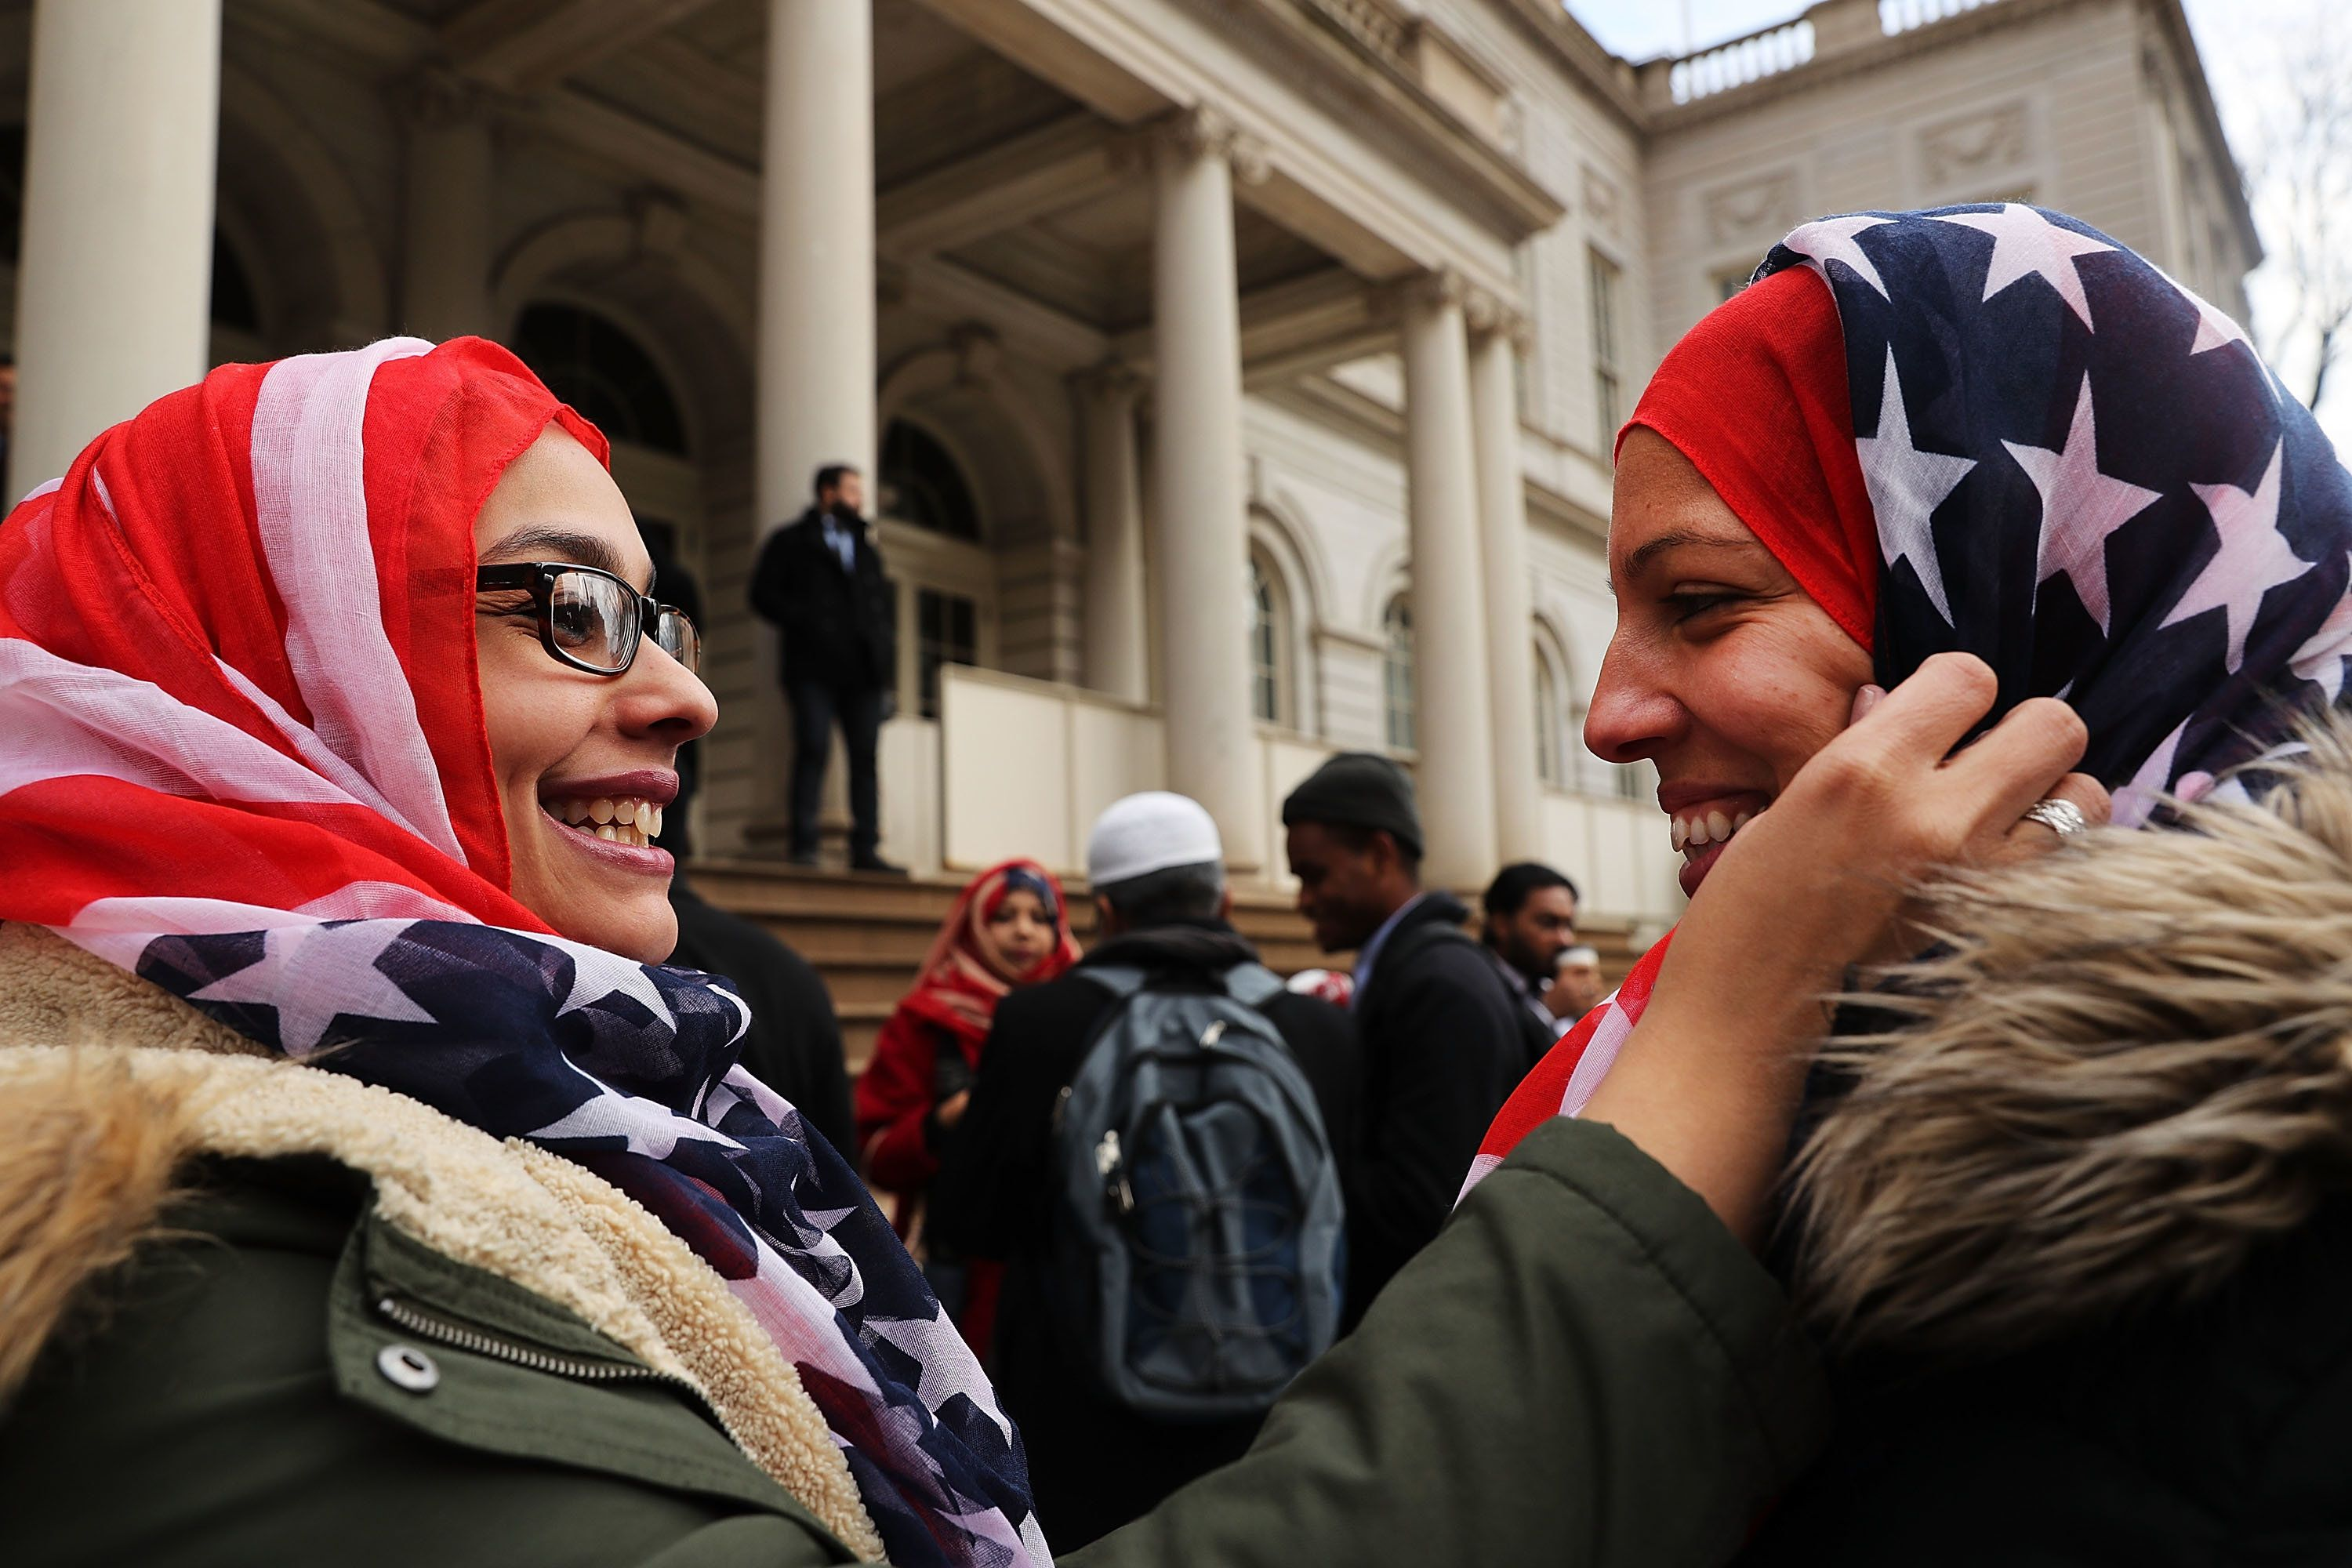 New York City Police Officers Aml Elsokary (left) and Maritza Morales wear American Flag head scarves.